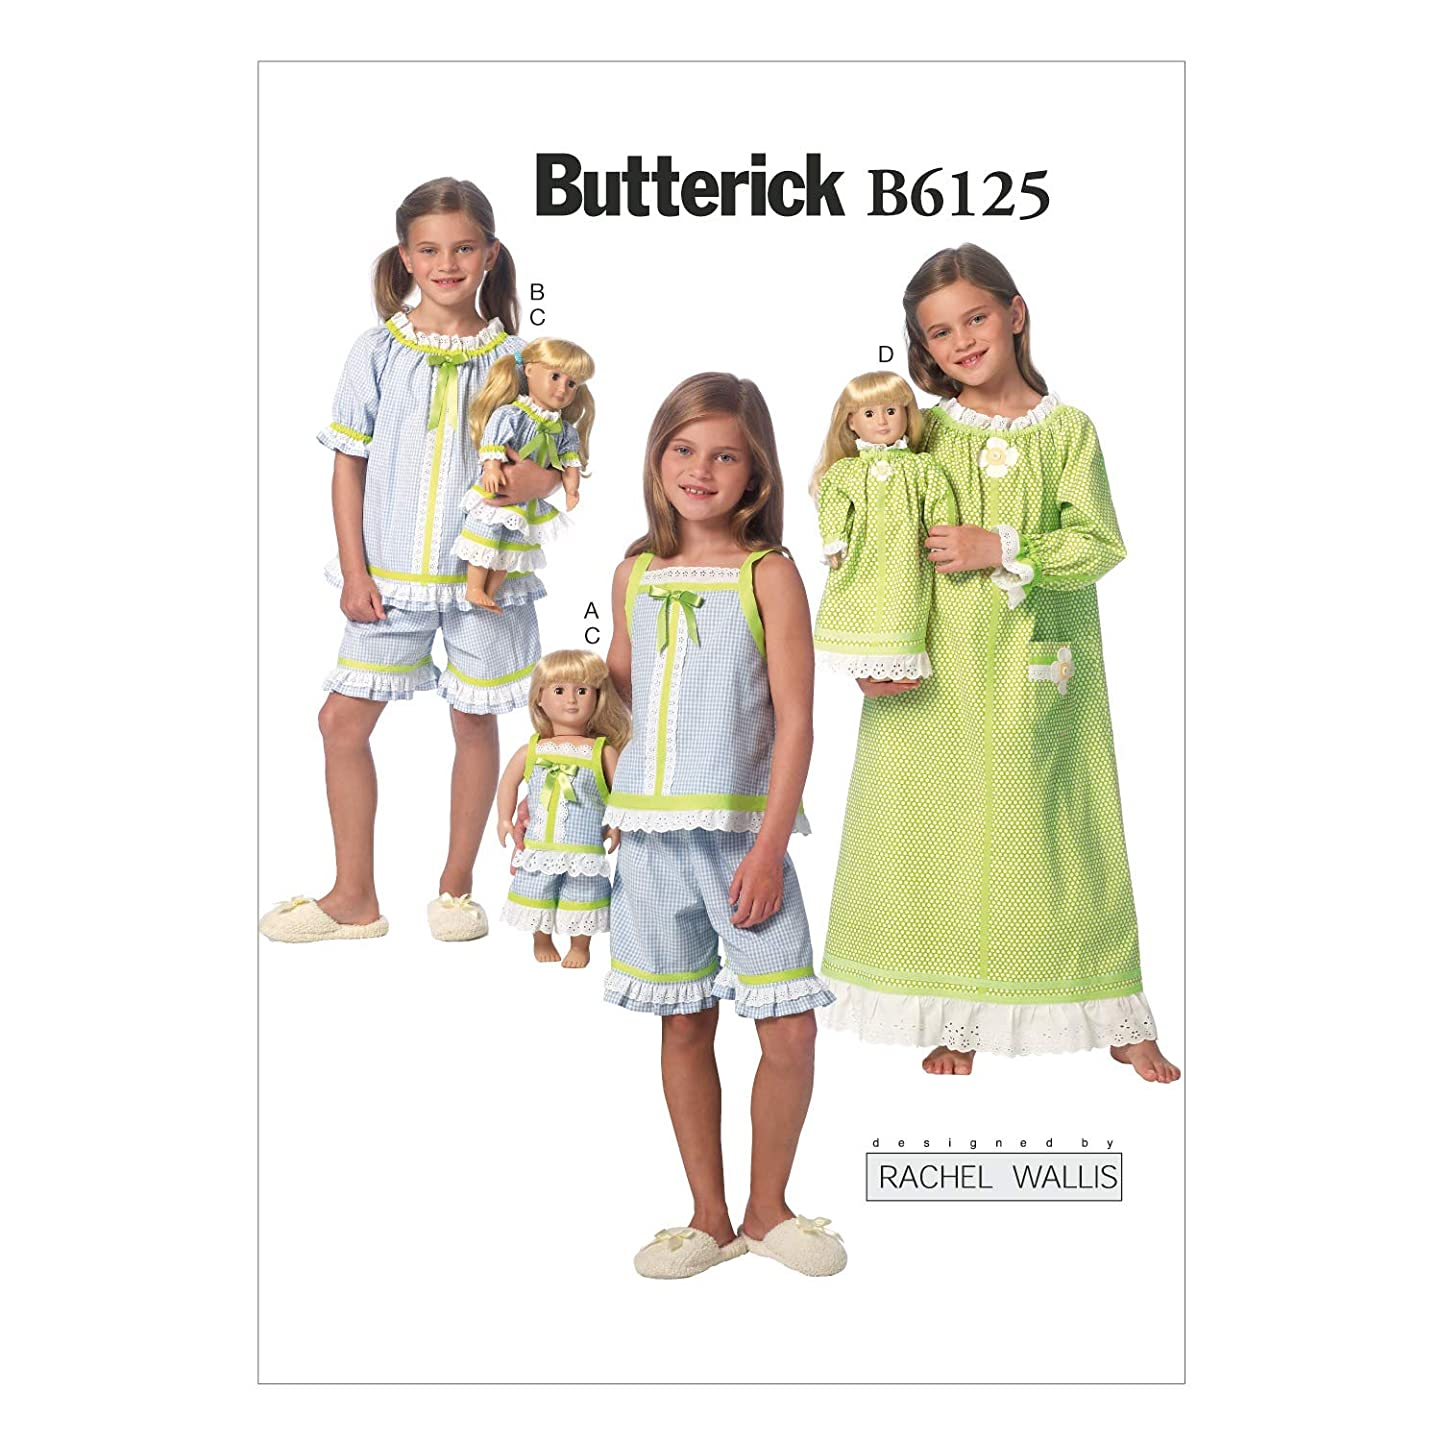 Butterick Patterns B6125 Children's/Girls'/18-Inch Dolls' Top, Gown, and Shorts Sewing Template, Size CDD (2-3-4-5)